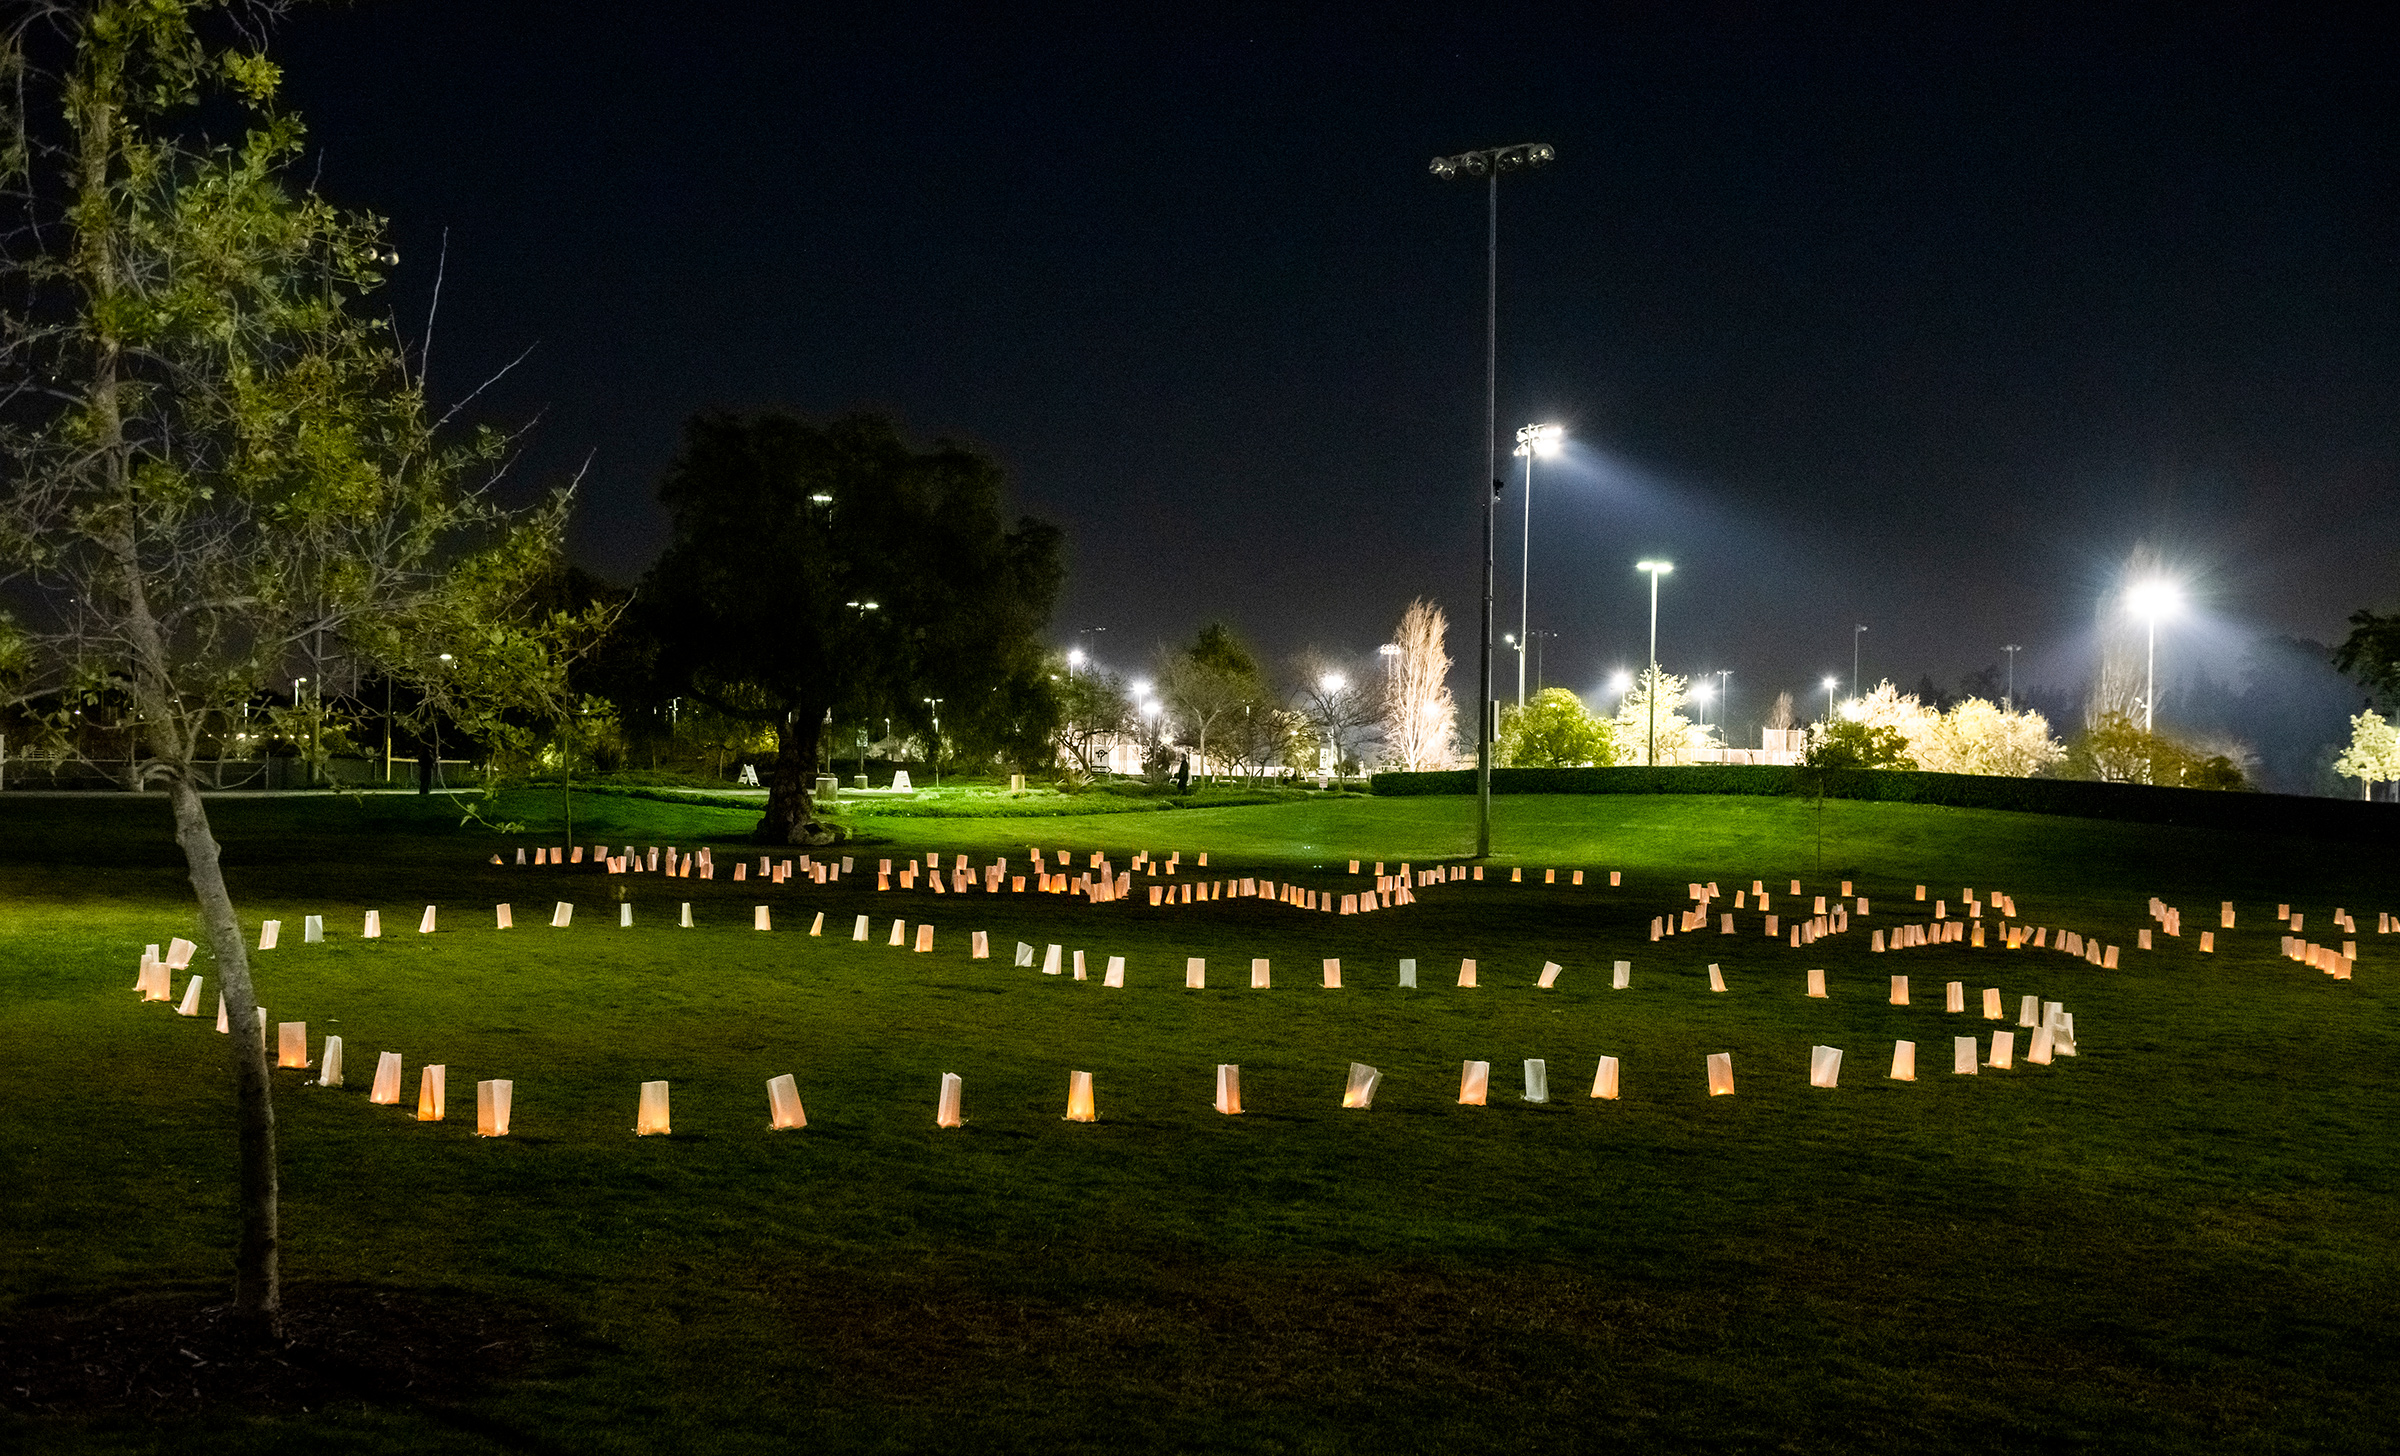 A March 4 candlelit memorial in Fountain Valley, Calif., pays tribute to victims of anti-Asian hate crimes amid the pandemic